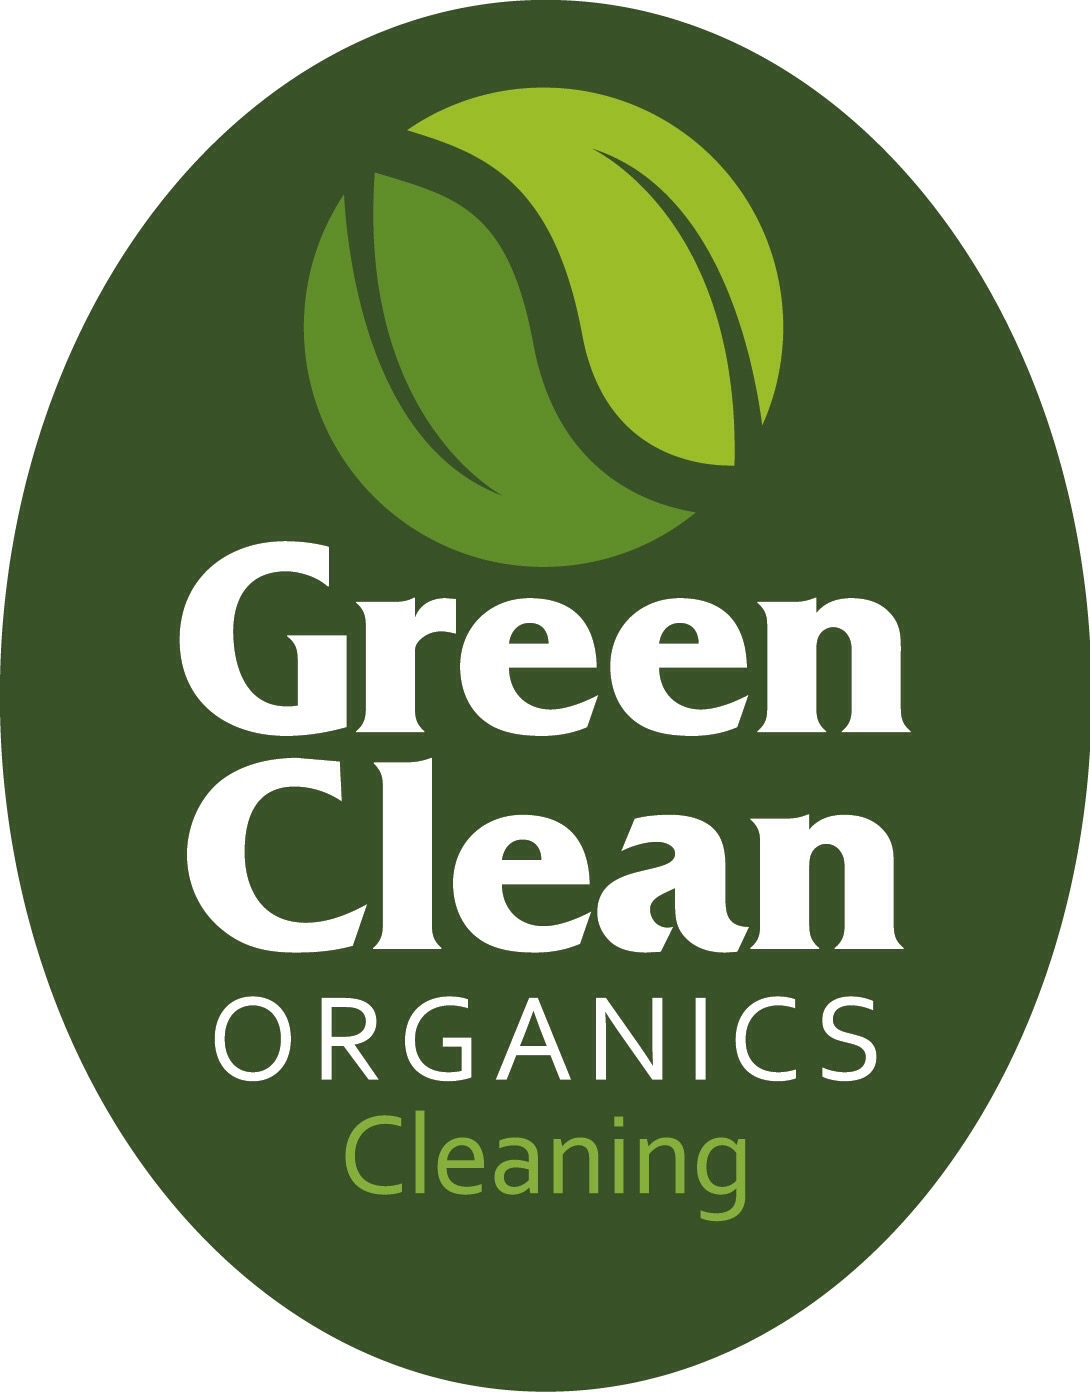 Green Clean Organics Carpet Cleaning